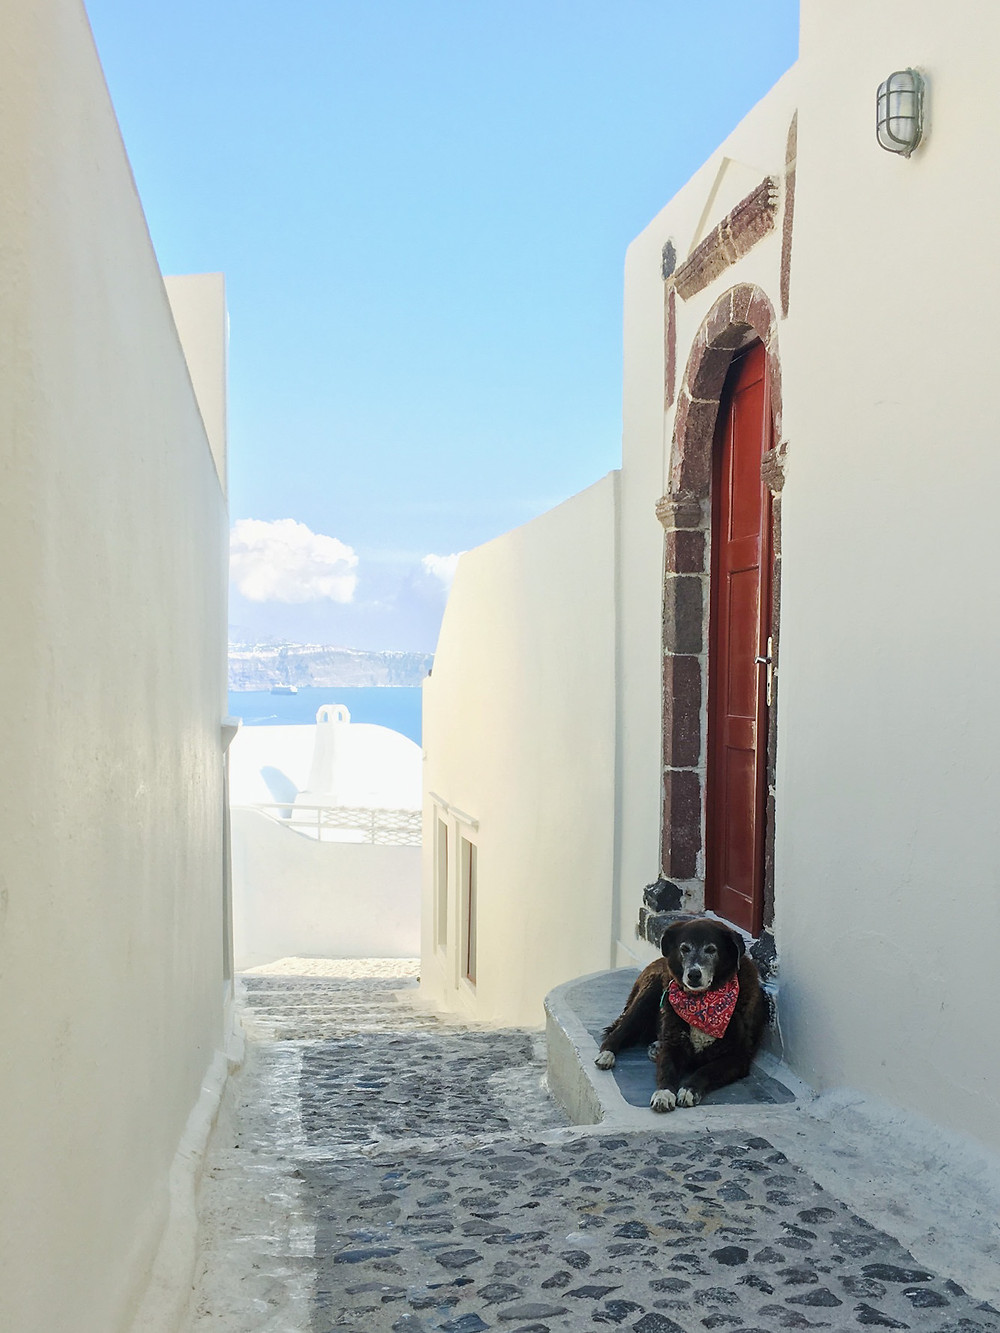 A dog with a red scarf sits on the doorstep of a red door surrounded by whitewashed walls in Oia, Santorini, Greece